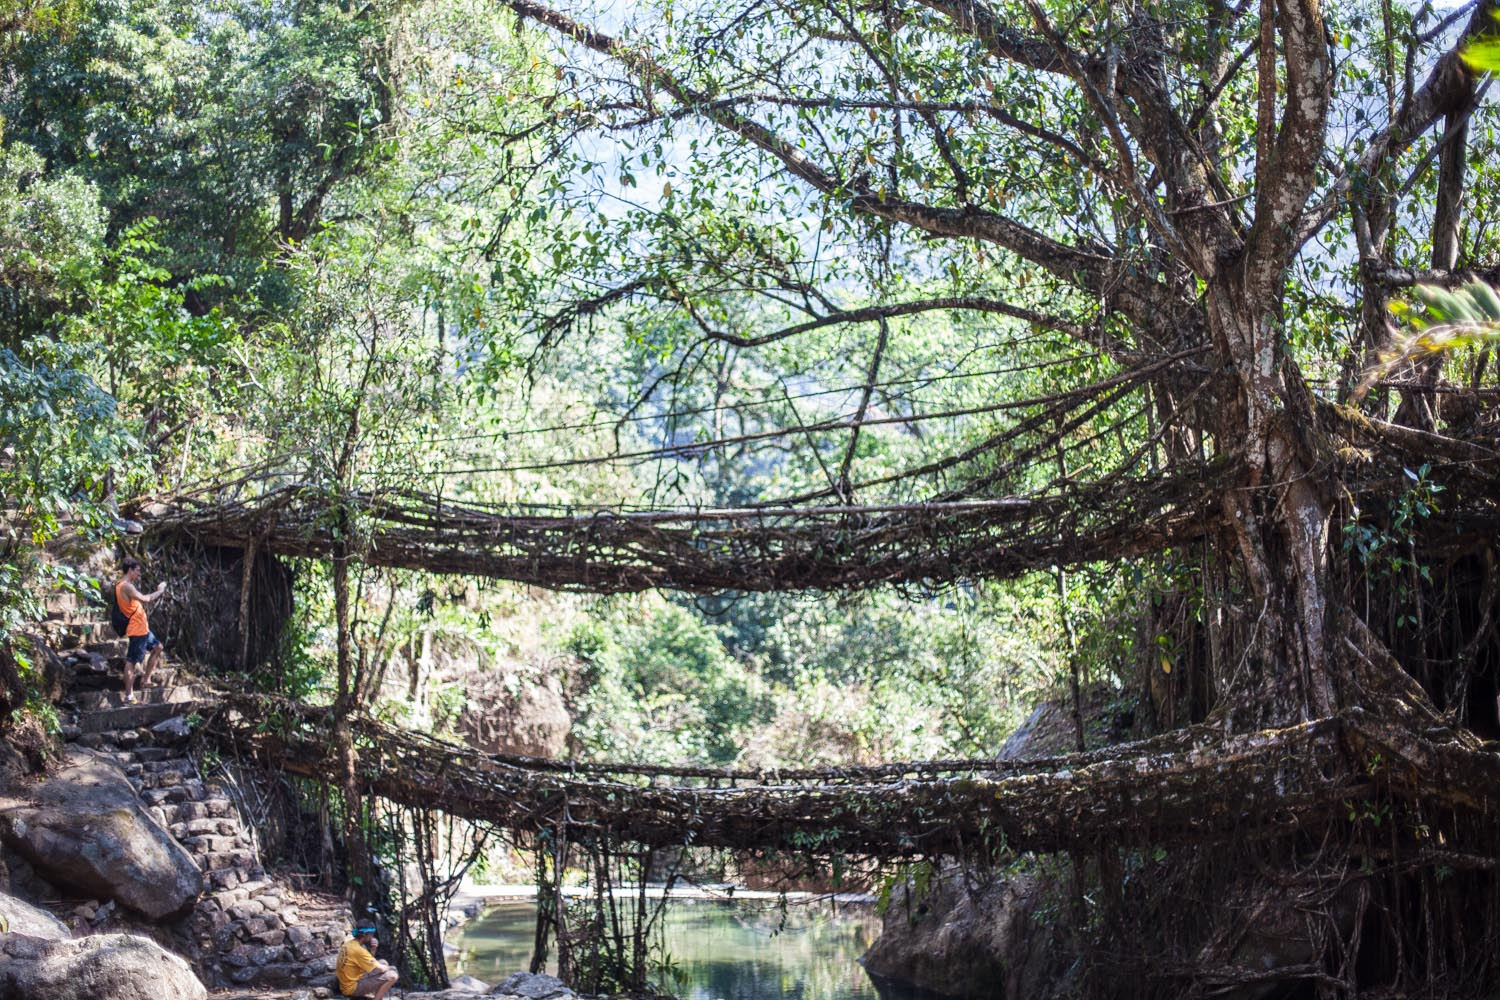 Living tree root bridges: Cherrapunji, Meghalaya